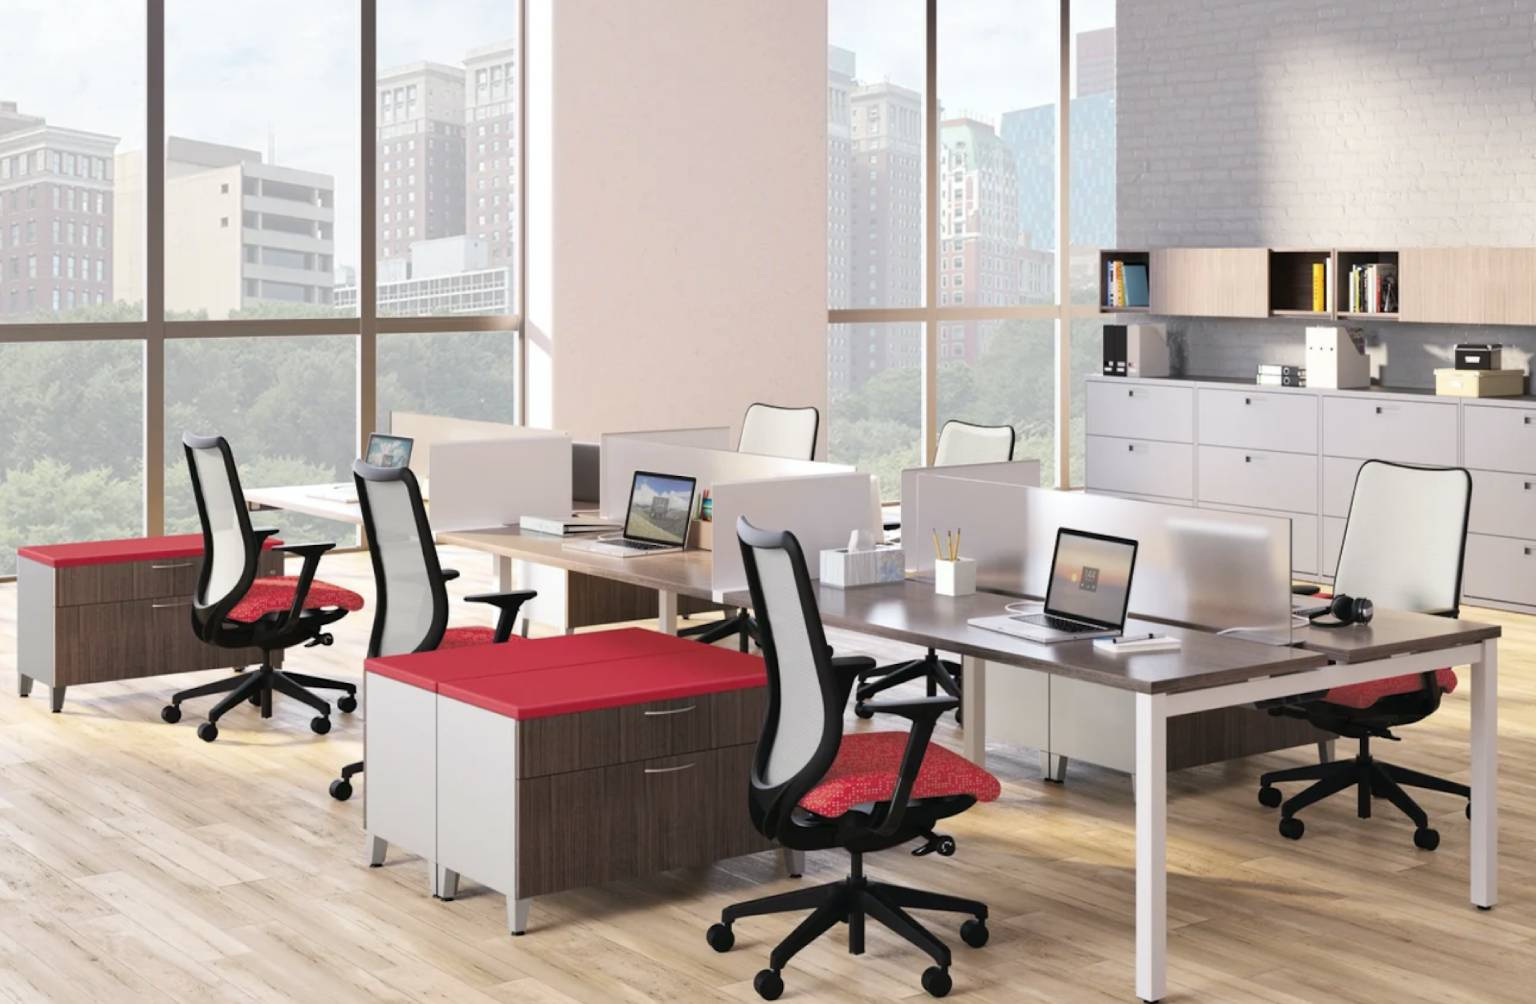 7 Tips for Building Your Own Office